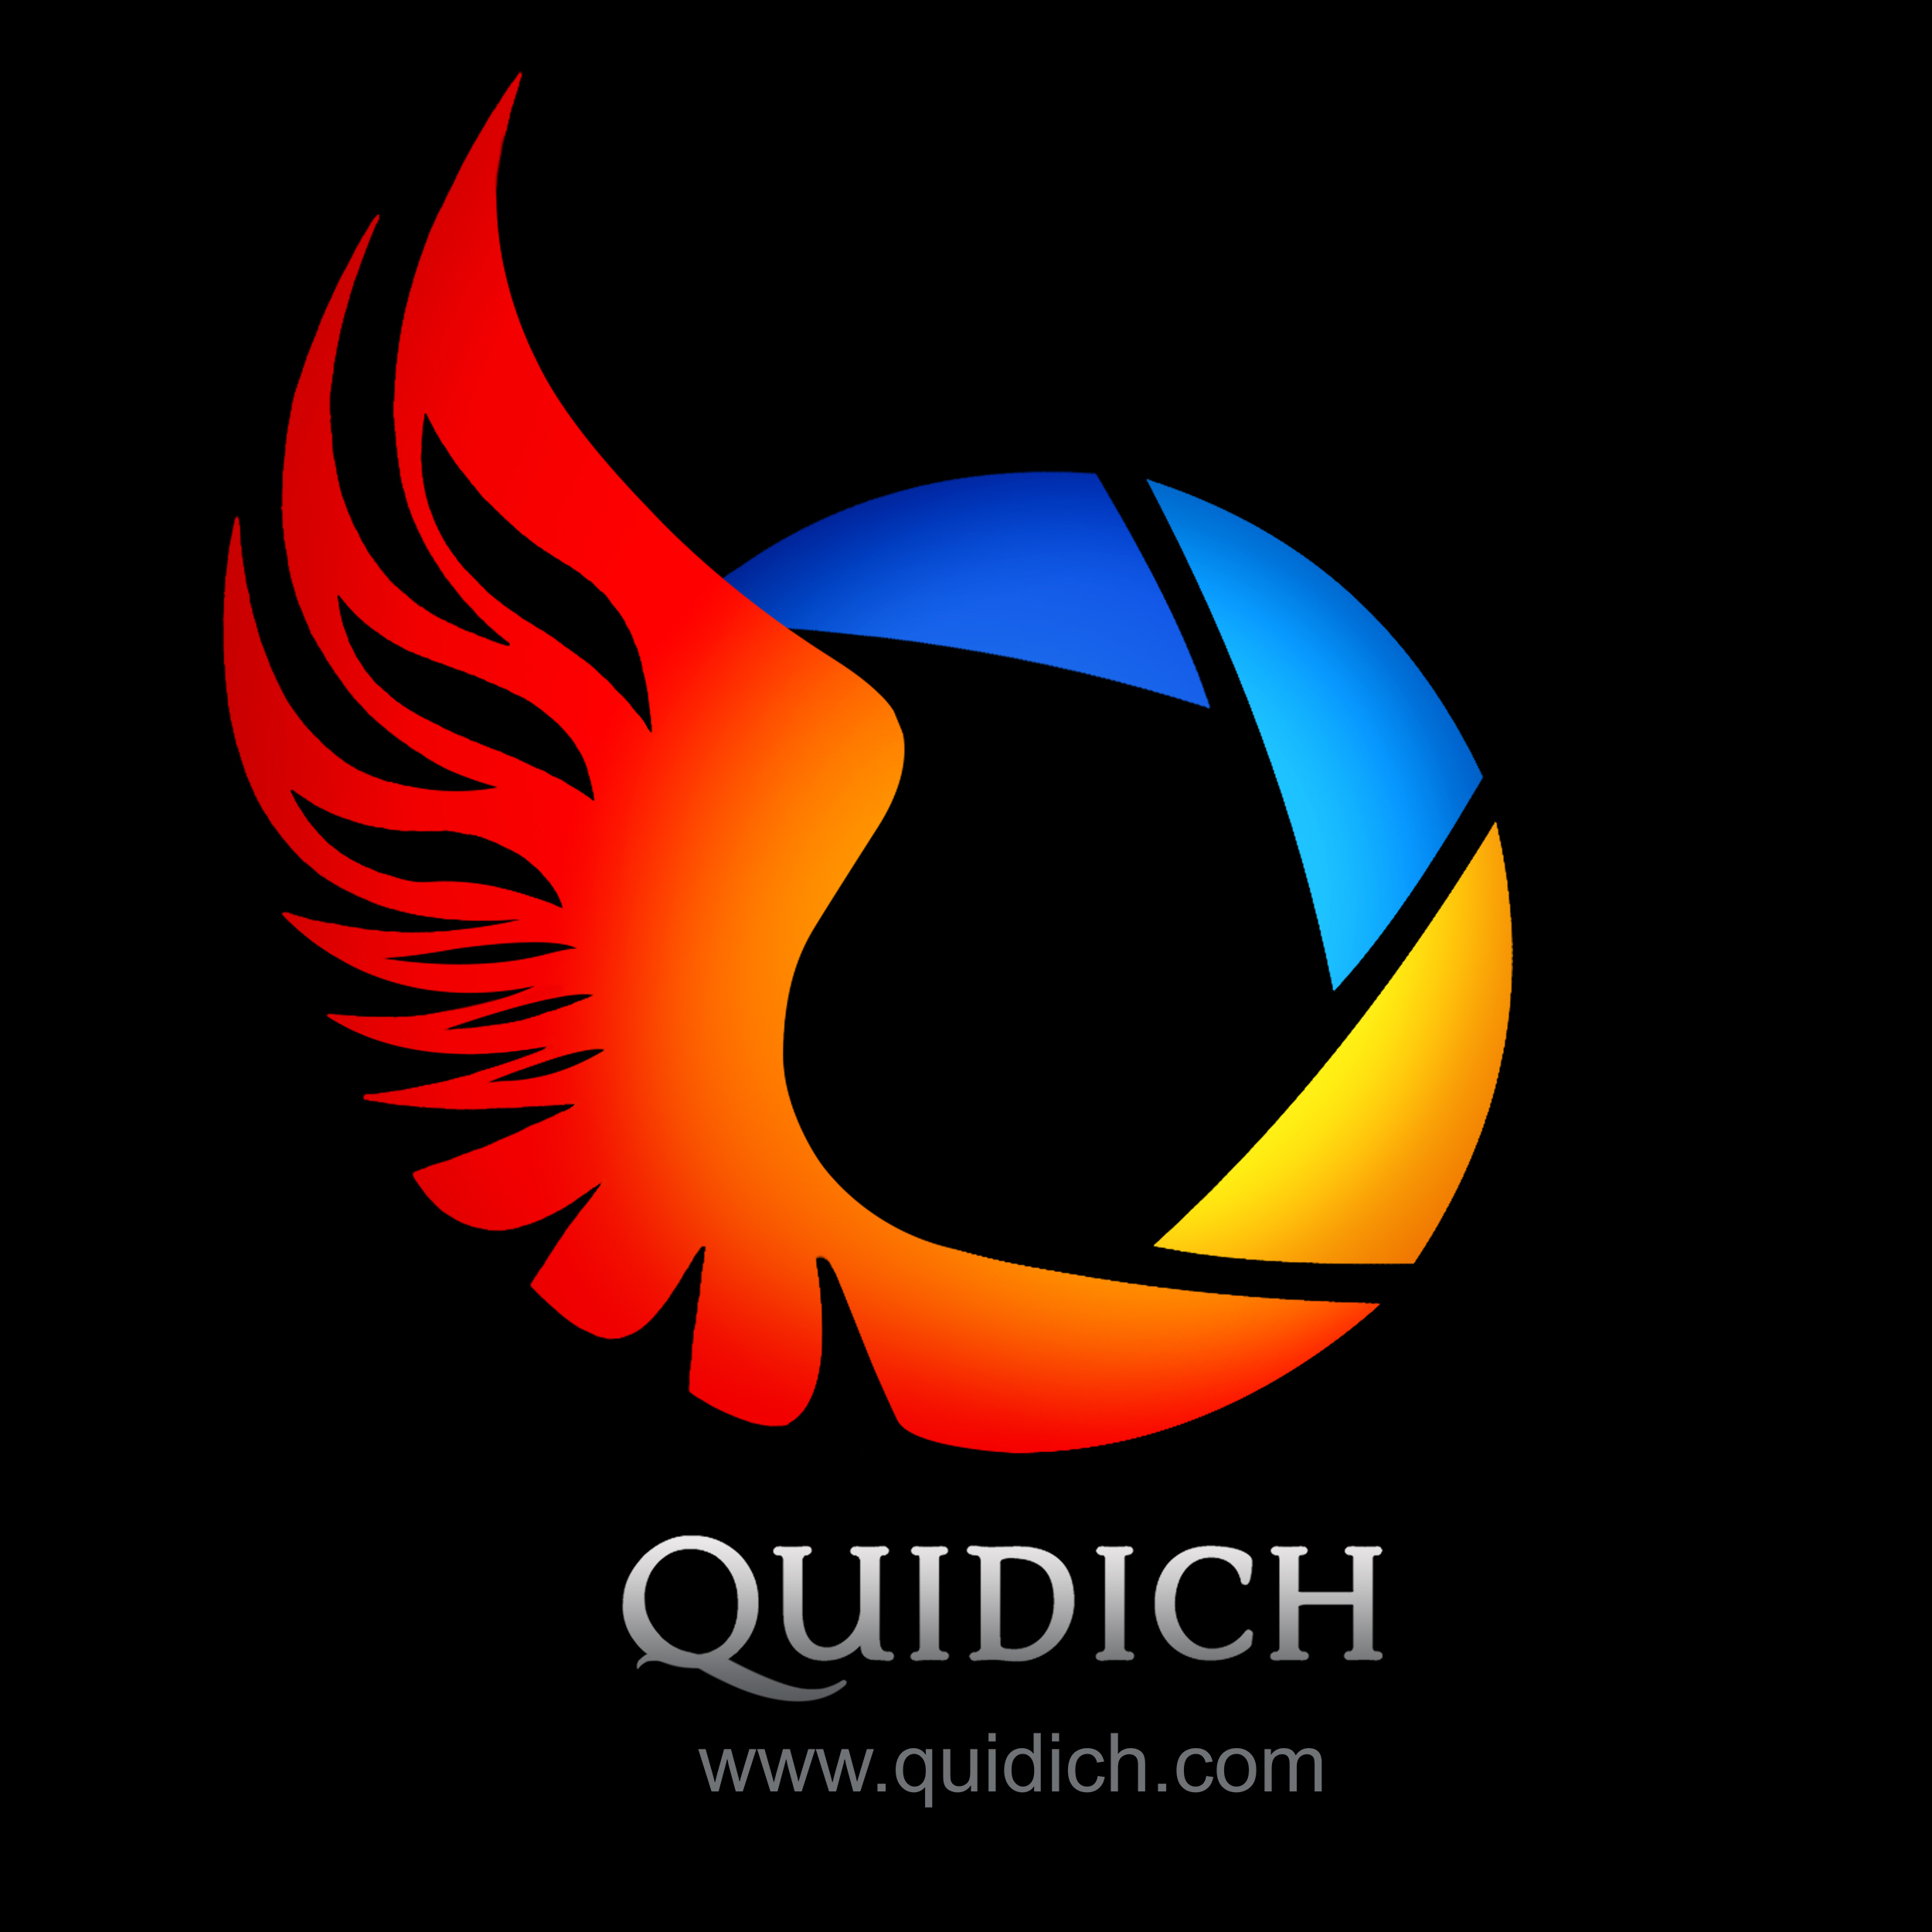 Quidich Innovation Labs